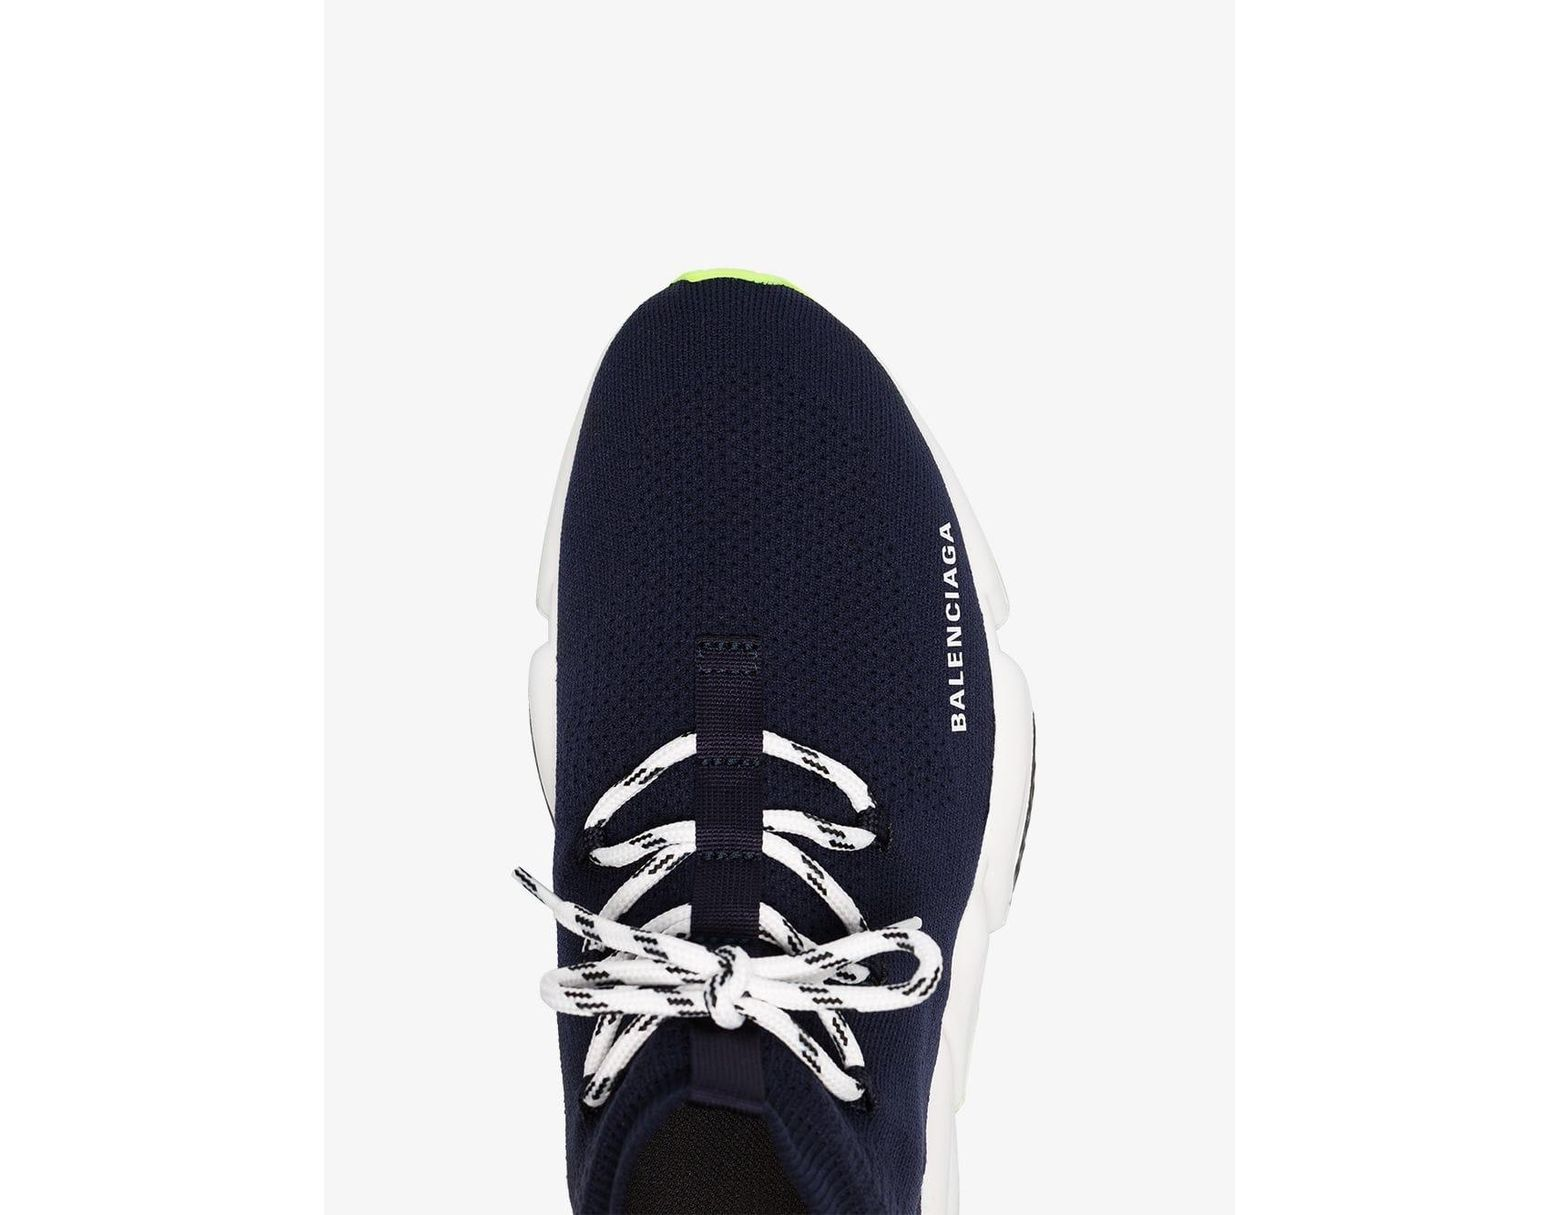 dced62869ef86 Balenciaga Men's Lace-up Speed Sneakers in Blue for Men - Save 3% - Lyst